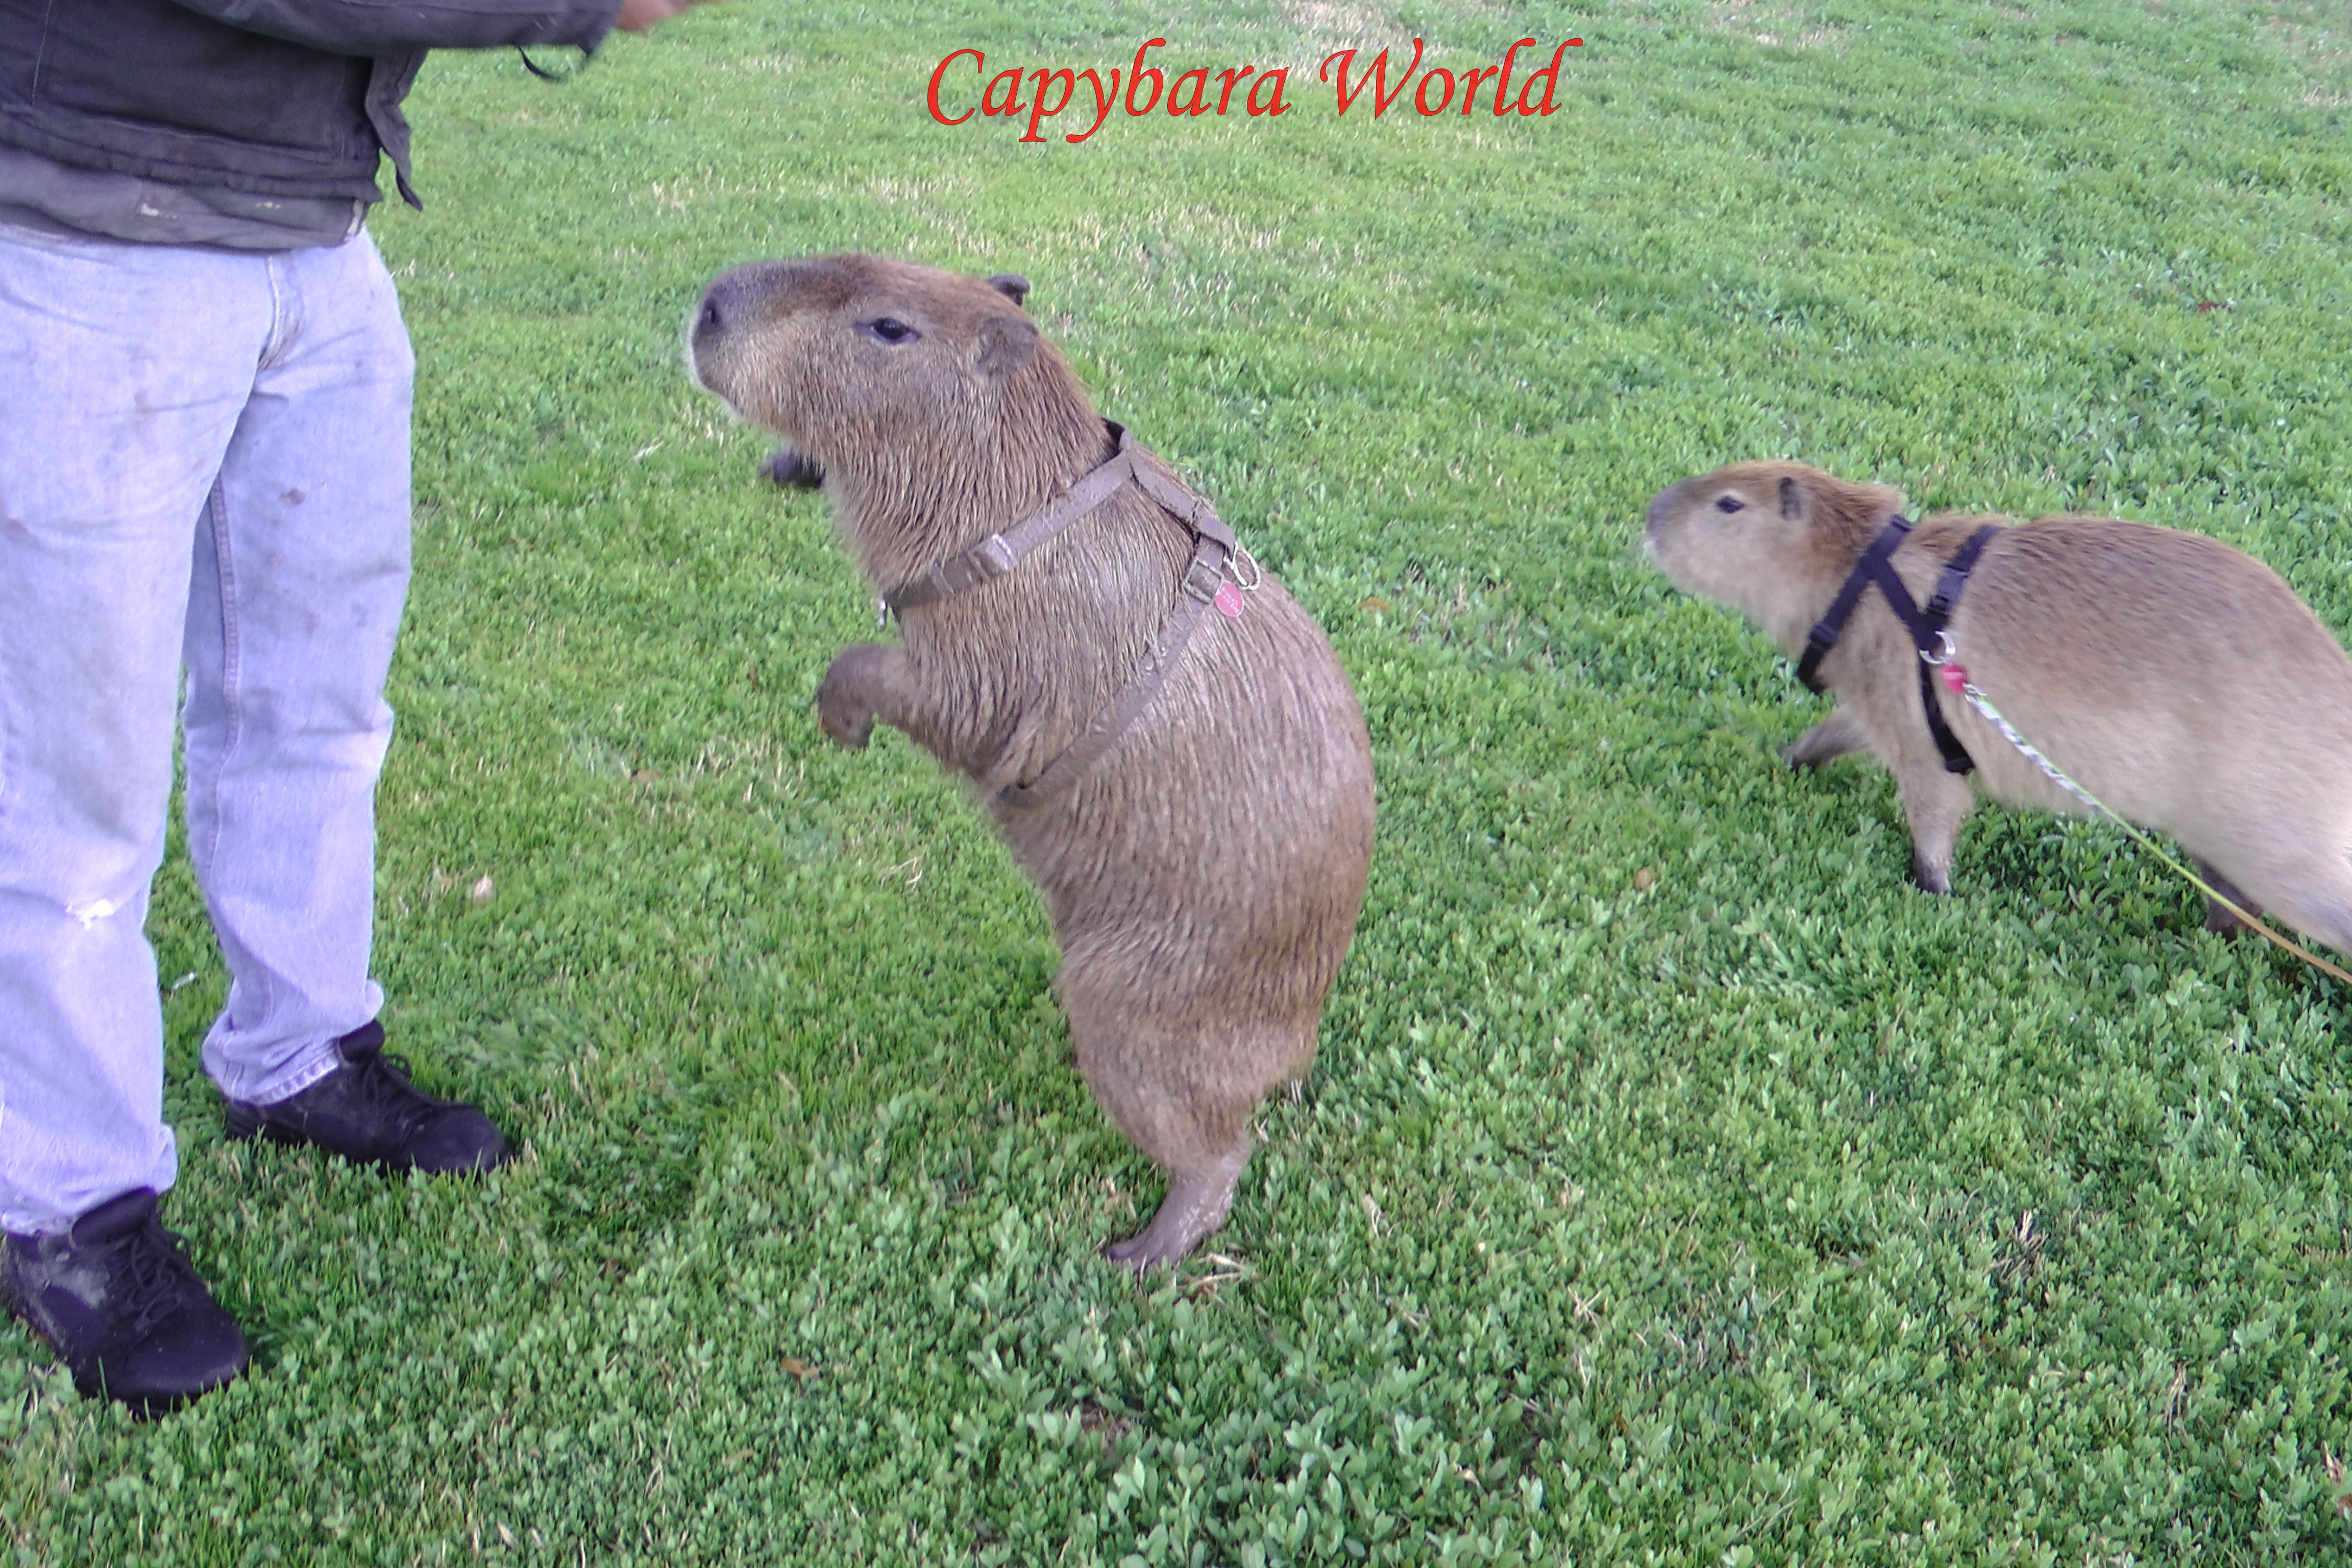 A day in the life of a pet capybara muddy romeo at the park romeo loves to roll in the mud he also publicscrutiny Image collections